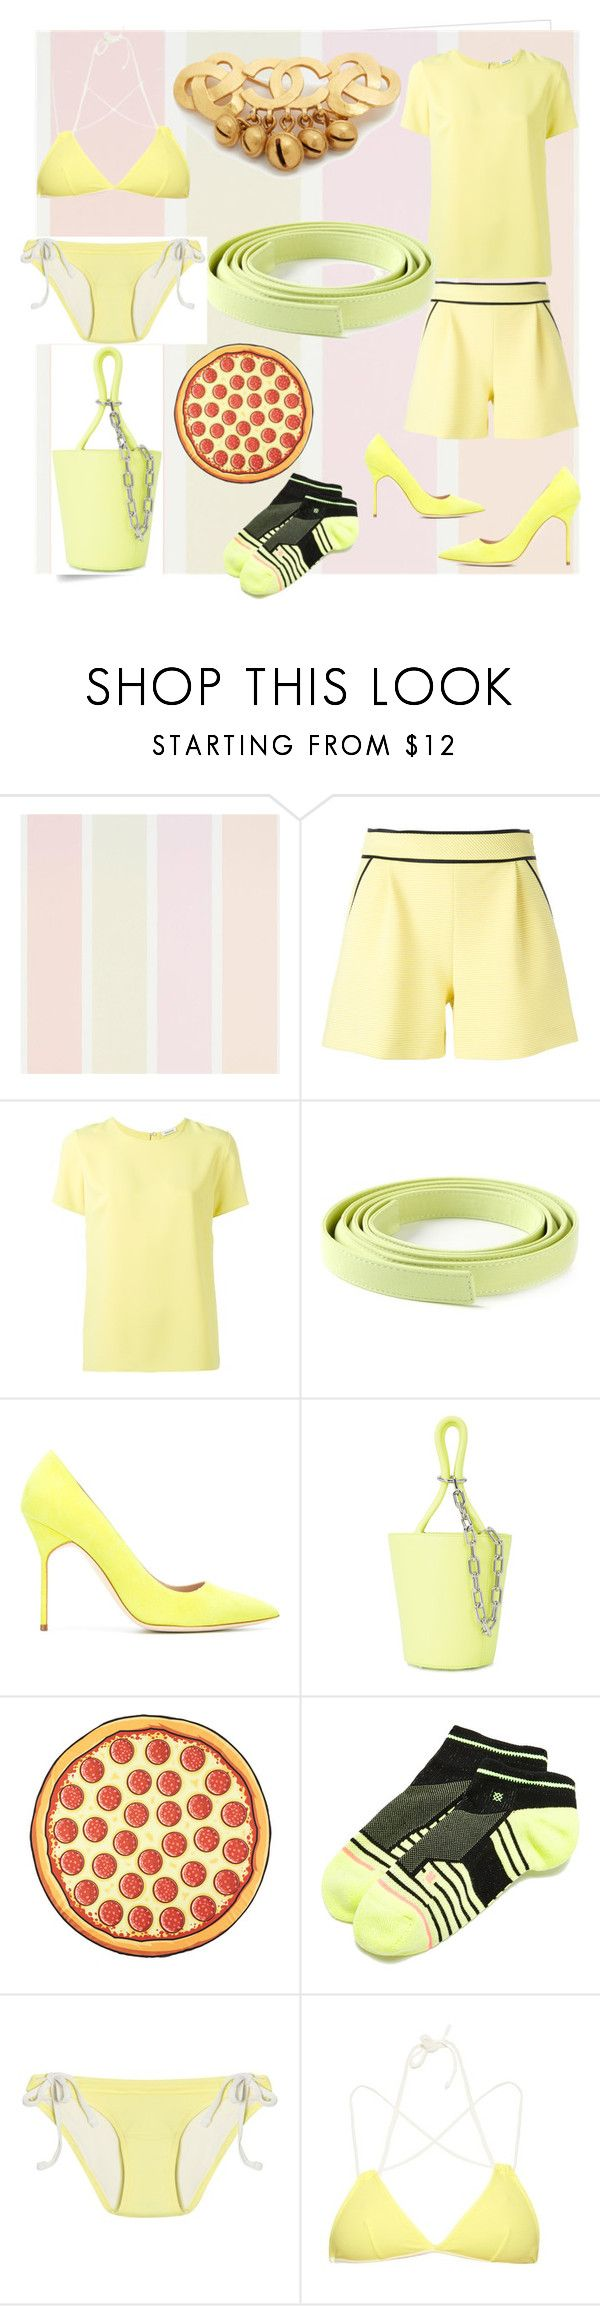 """yellow line's of set"" by denisee-denisee ❤ liked on Polyvore featuring Post-It, Boutique Moschino, P.A.R.O.S.H., Ermanno Scervino, Manolo Blahnik, Alexander Wang, Stance, Solid & Striped and vintage"